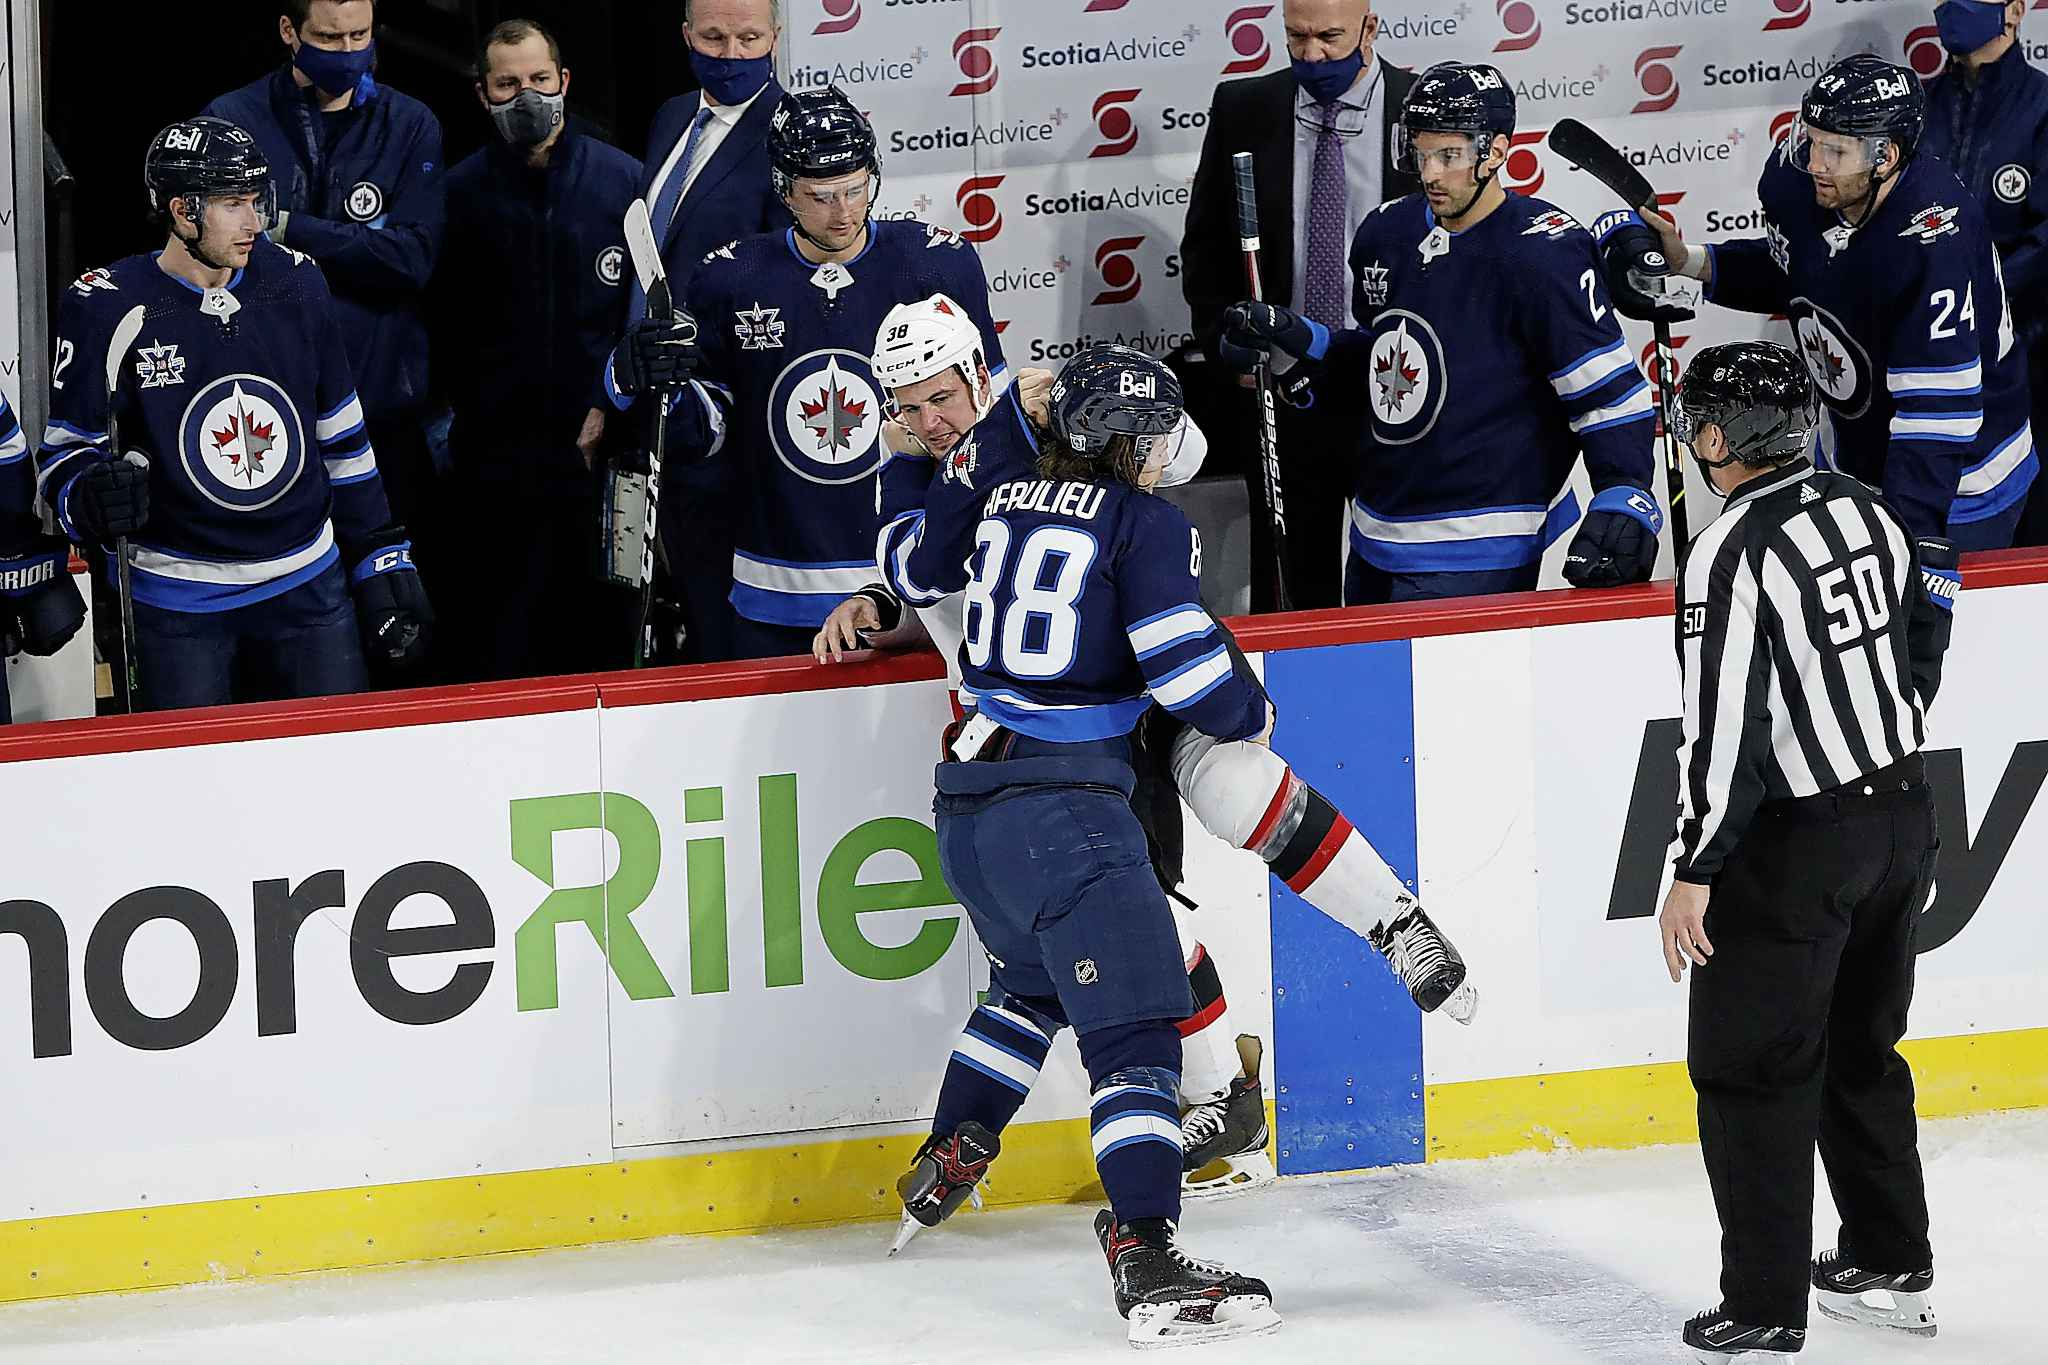 Winnipeg Jets' Nathan Beaulieu (88) tries to throw Ottawa Senators' Micheal Haley (38) over the boards during first period NHL action in Winnipeg on Saturday, January 23, 2021. (John Woods / The Canadian Press)